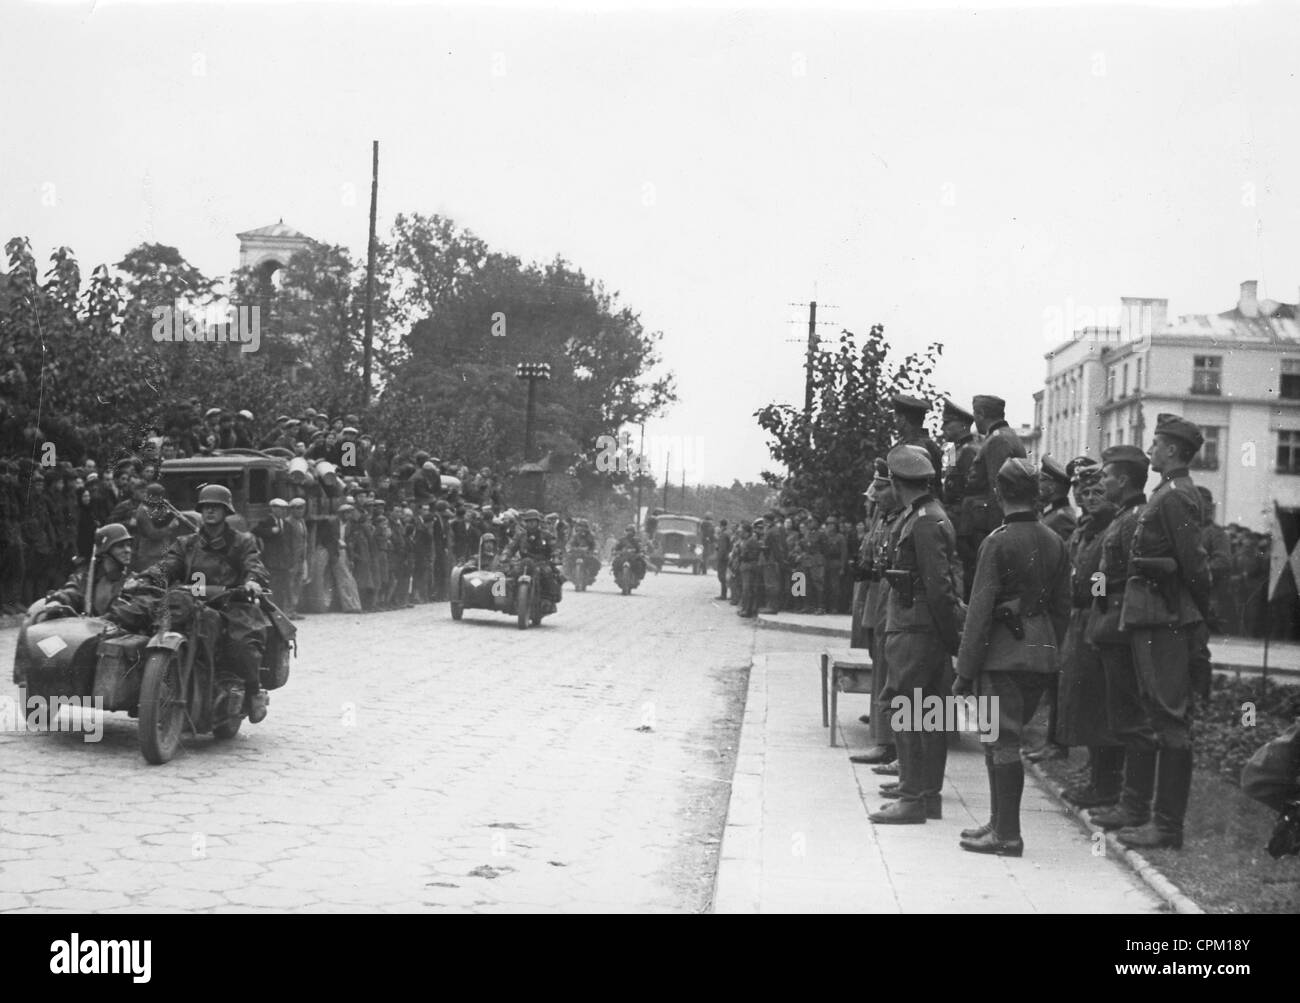 Parade during the withdrawal of the Germans from Brest-Litovsk, 1939 - Stock Image